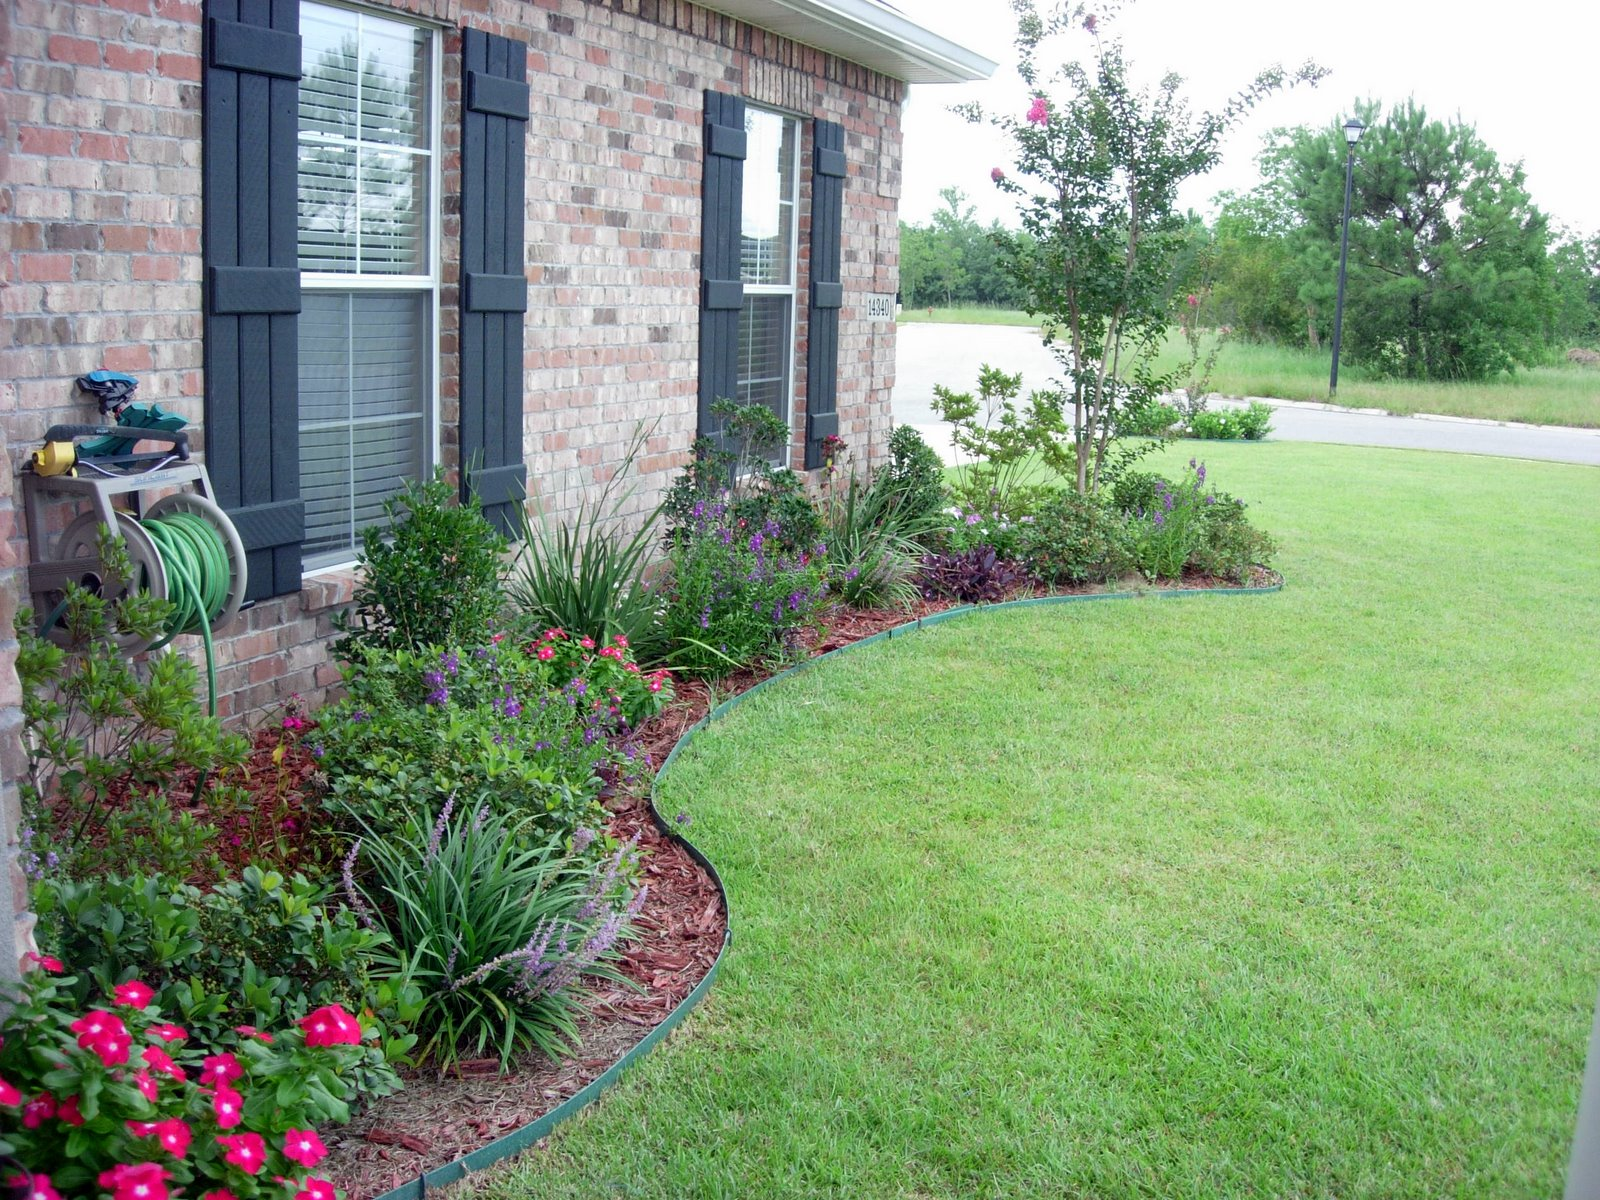 D i y d e s i g n curb appeal part 2 the landscaping for Flower bed designs